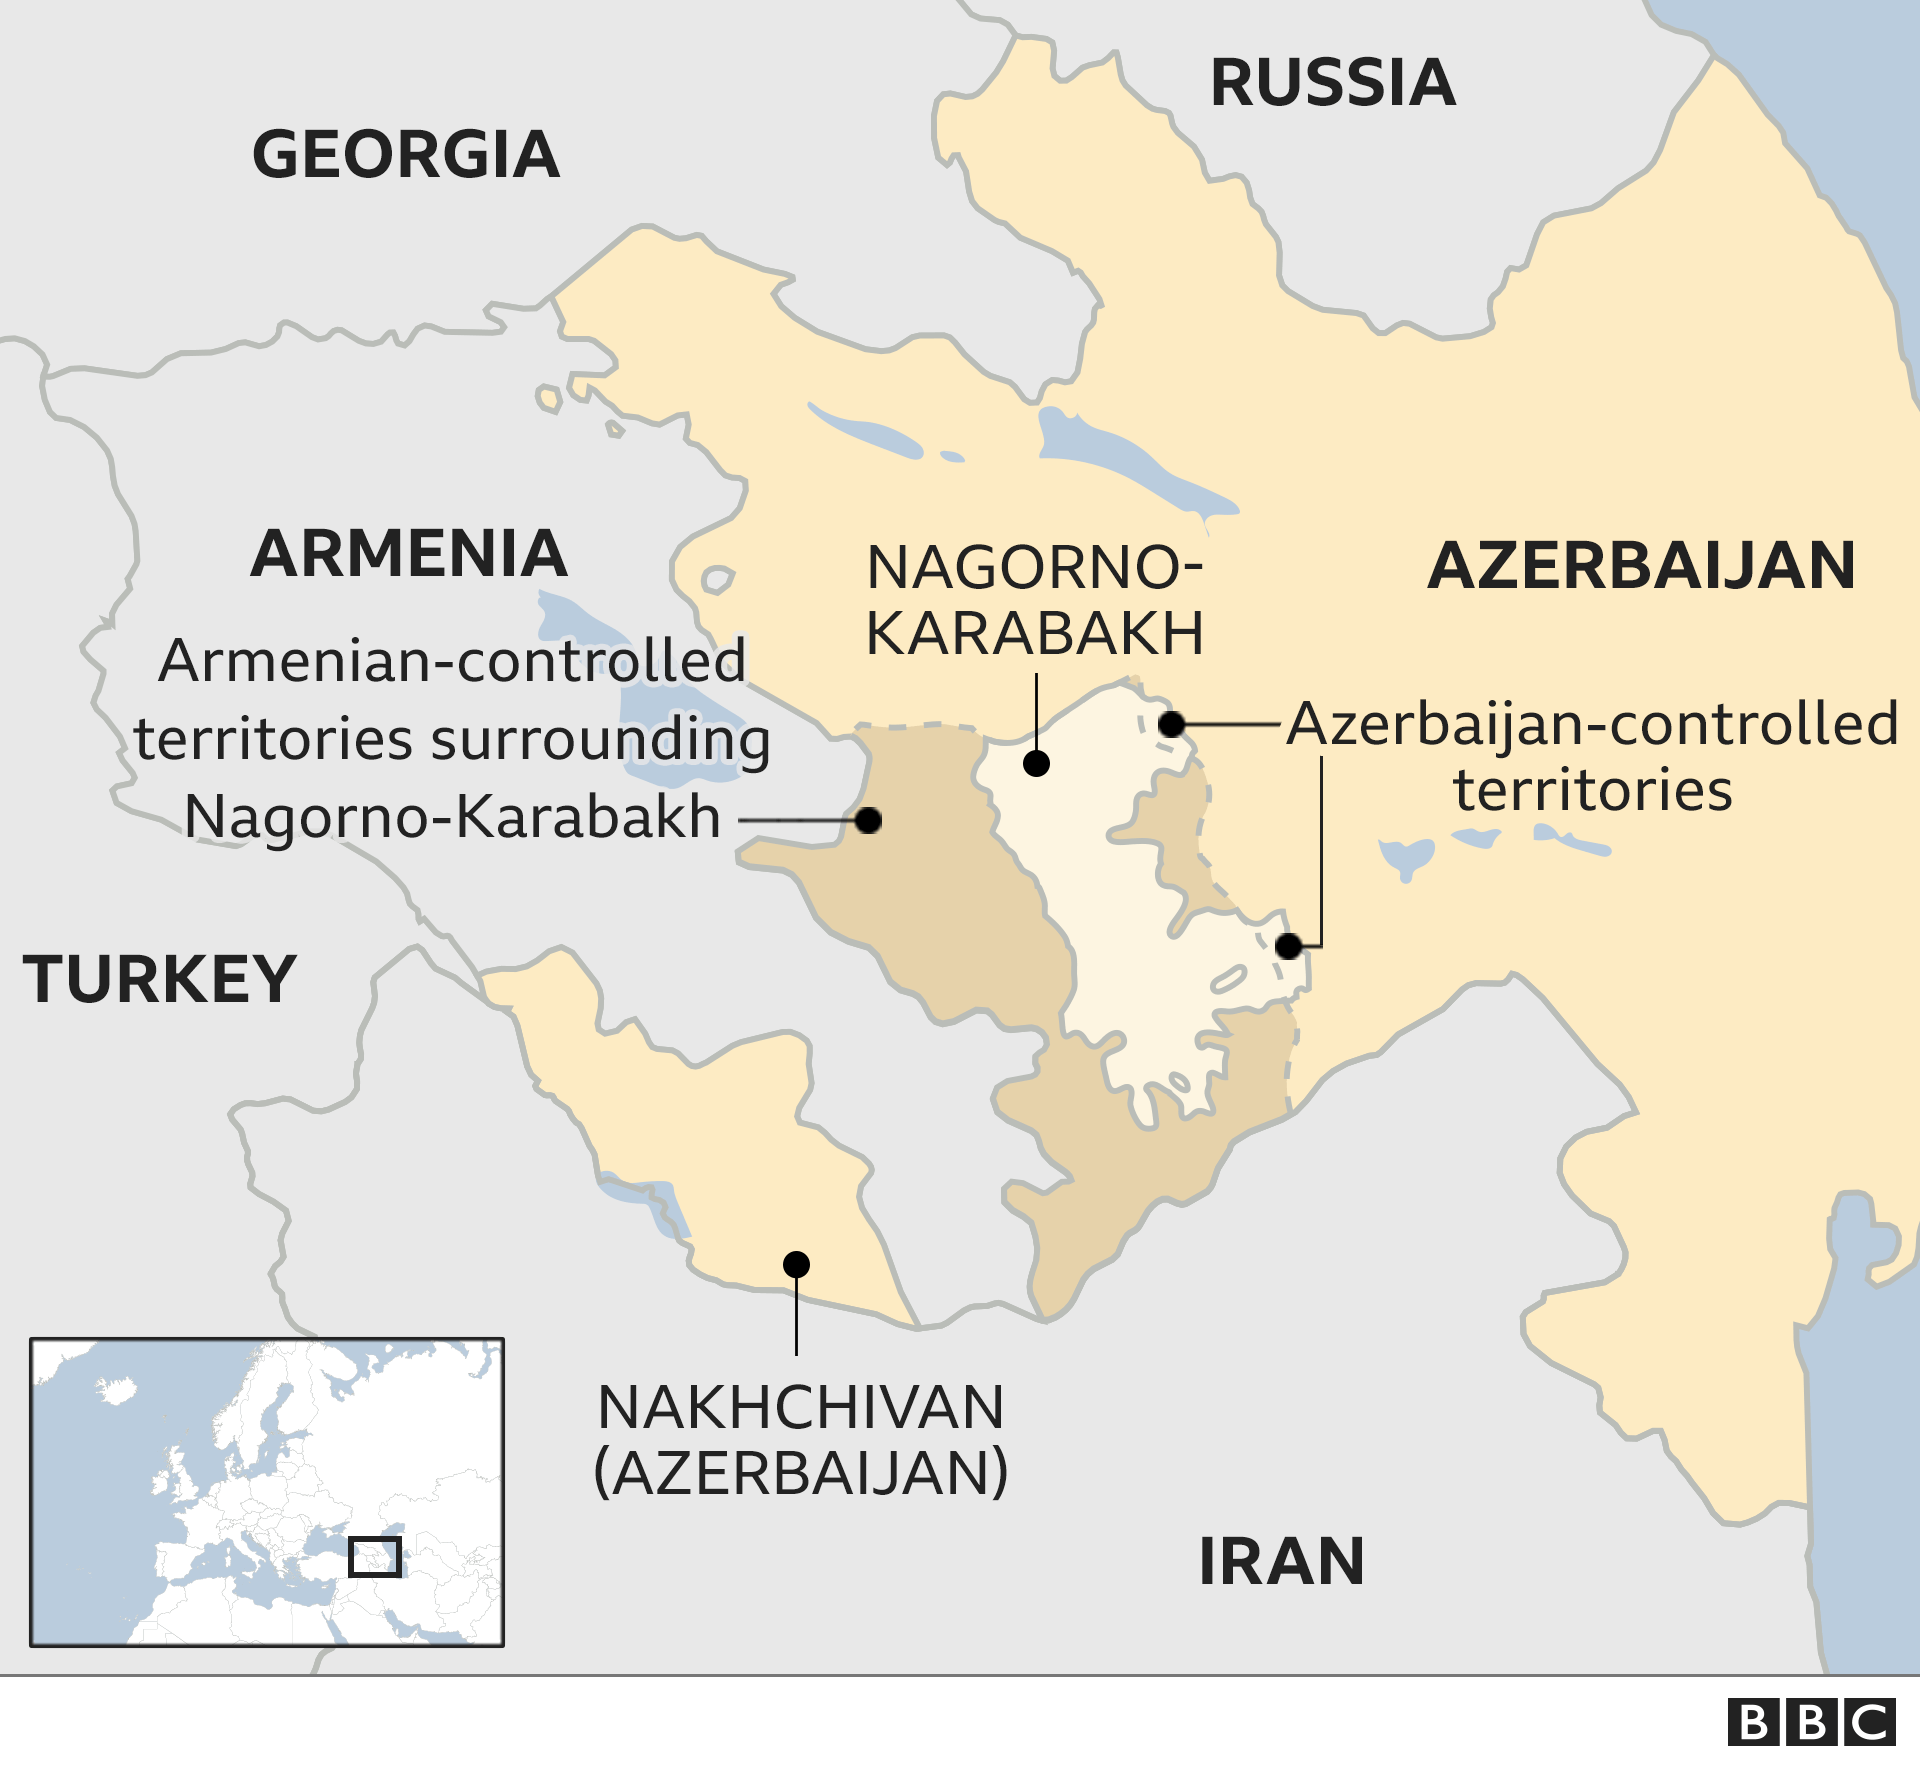 Nagorno Karabakh The Armenian Azeri Information Wars Bbc News